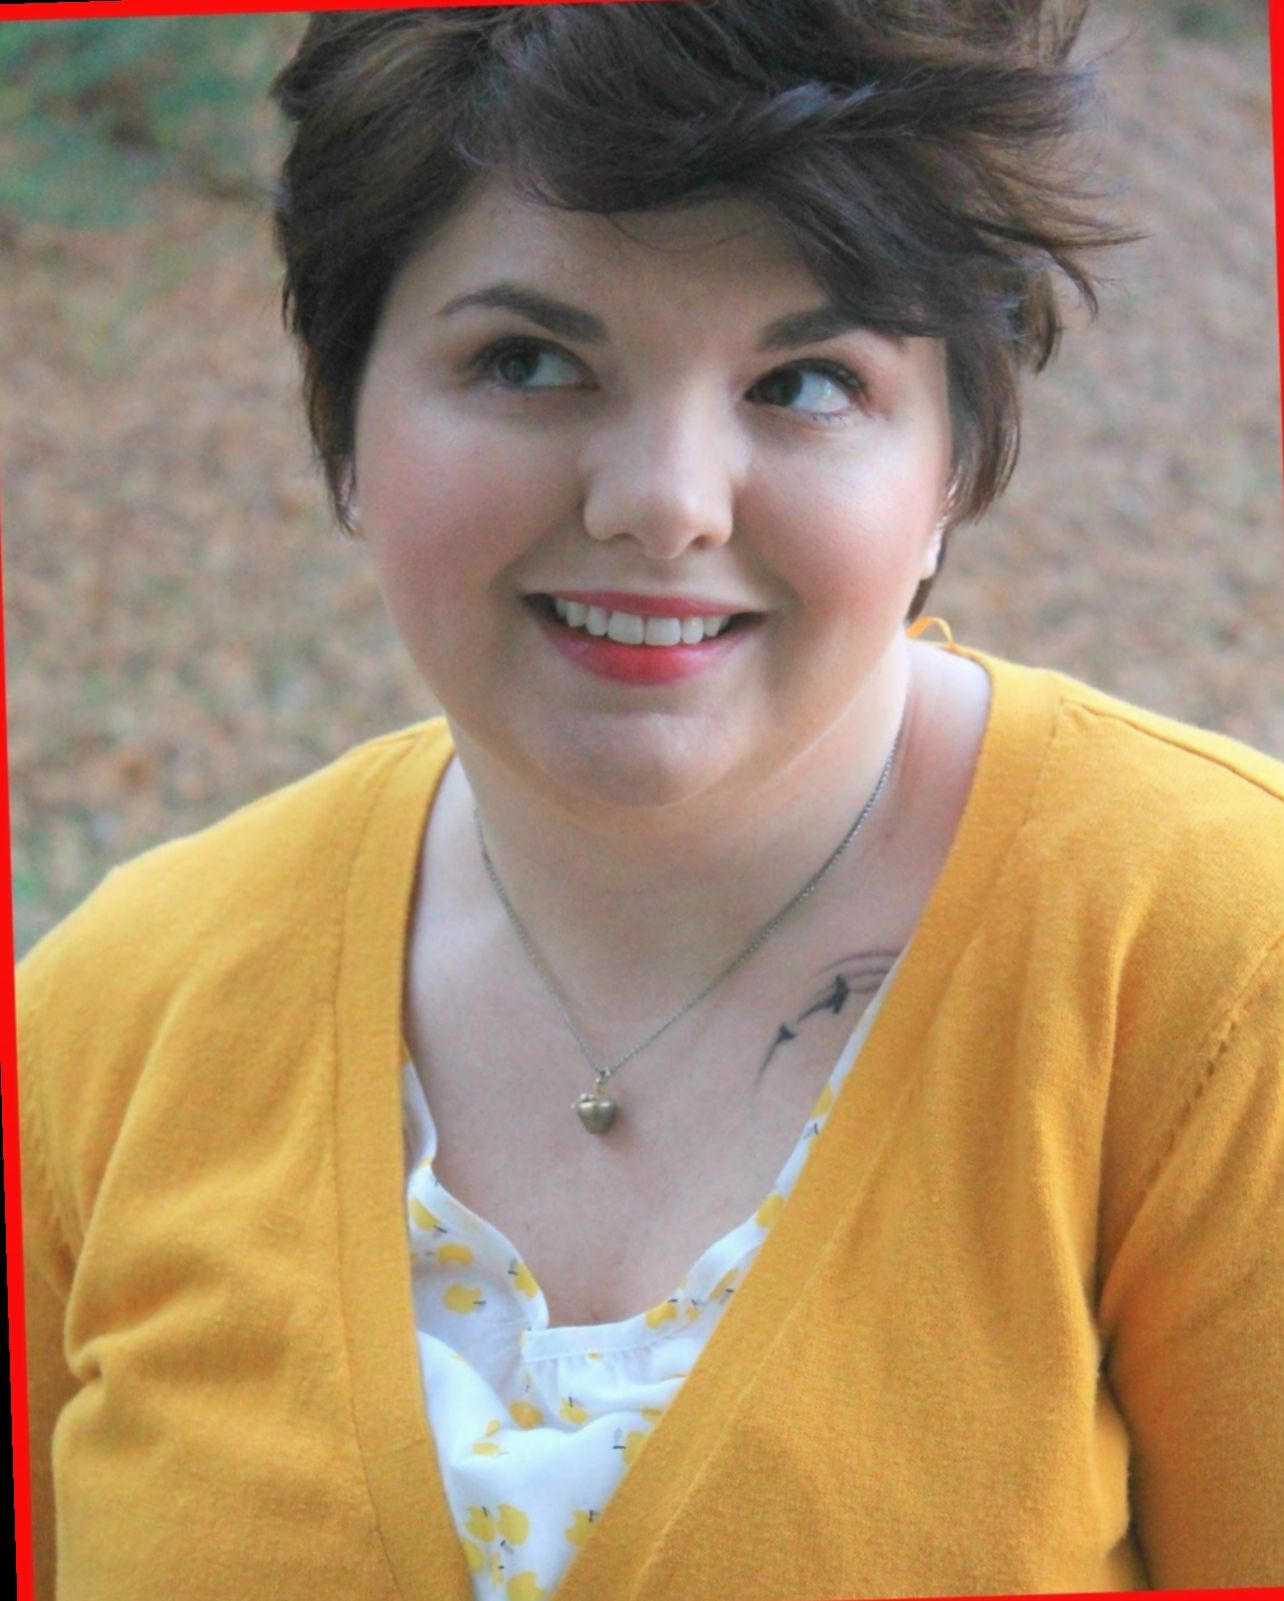 Hairstyles Short Round Face Plus Size Hairinspo Hairgoals Haircut Short Hair Plus Size Plus Size Hairstyles Short Hair Model